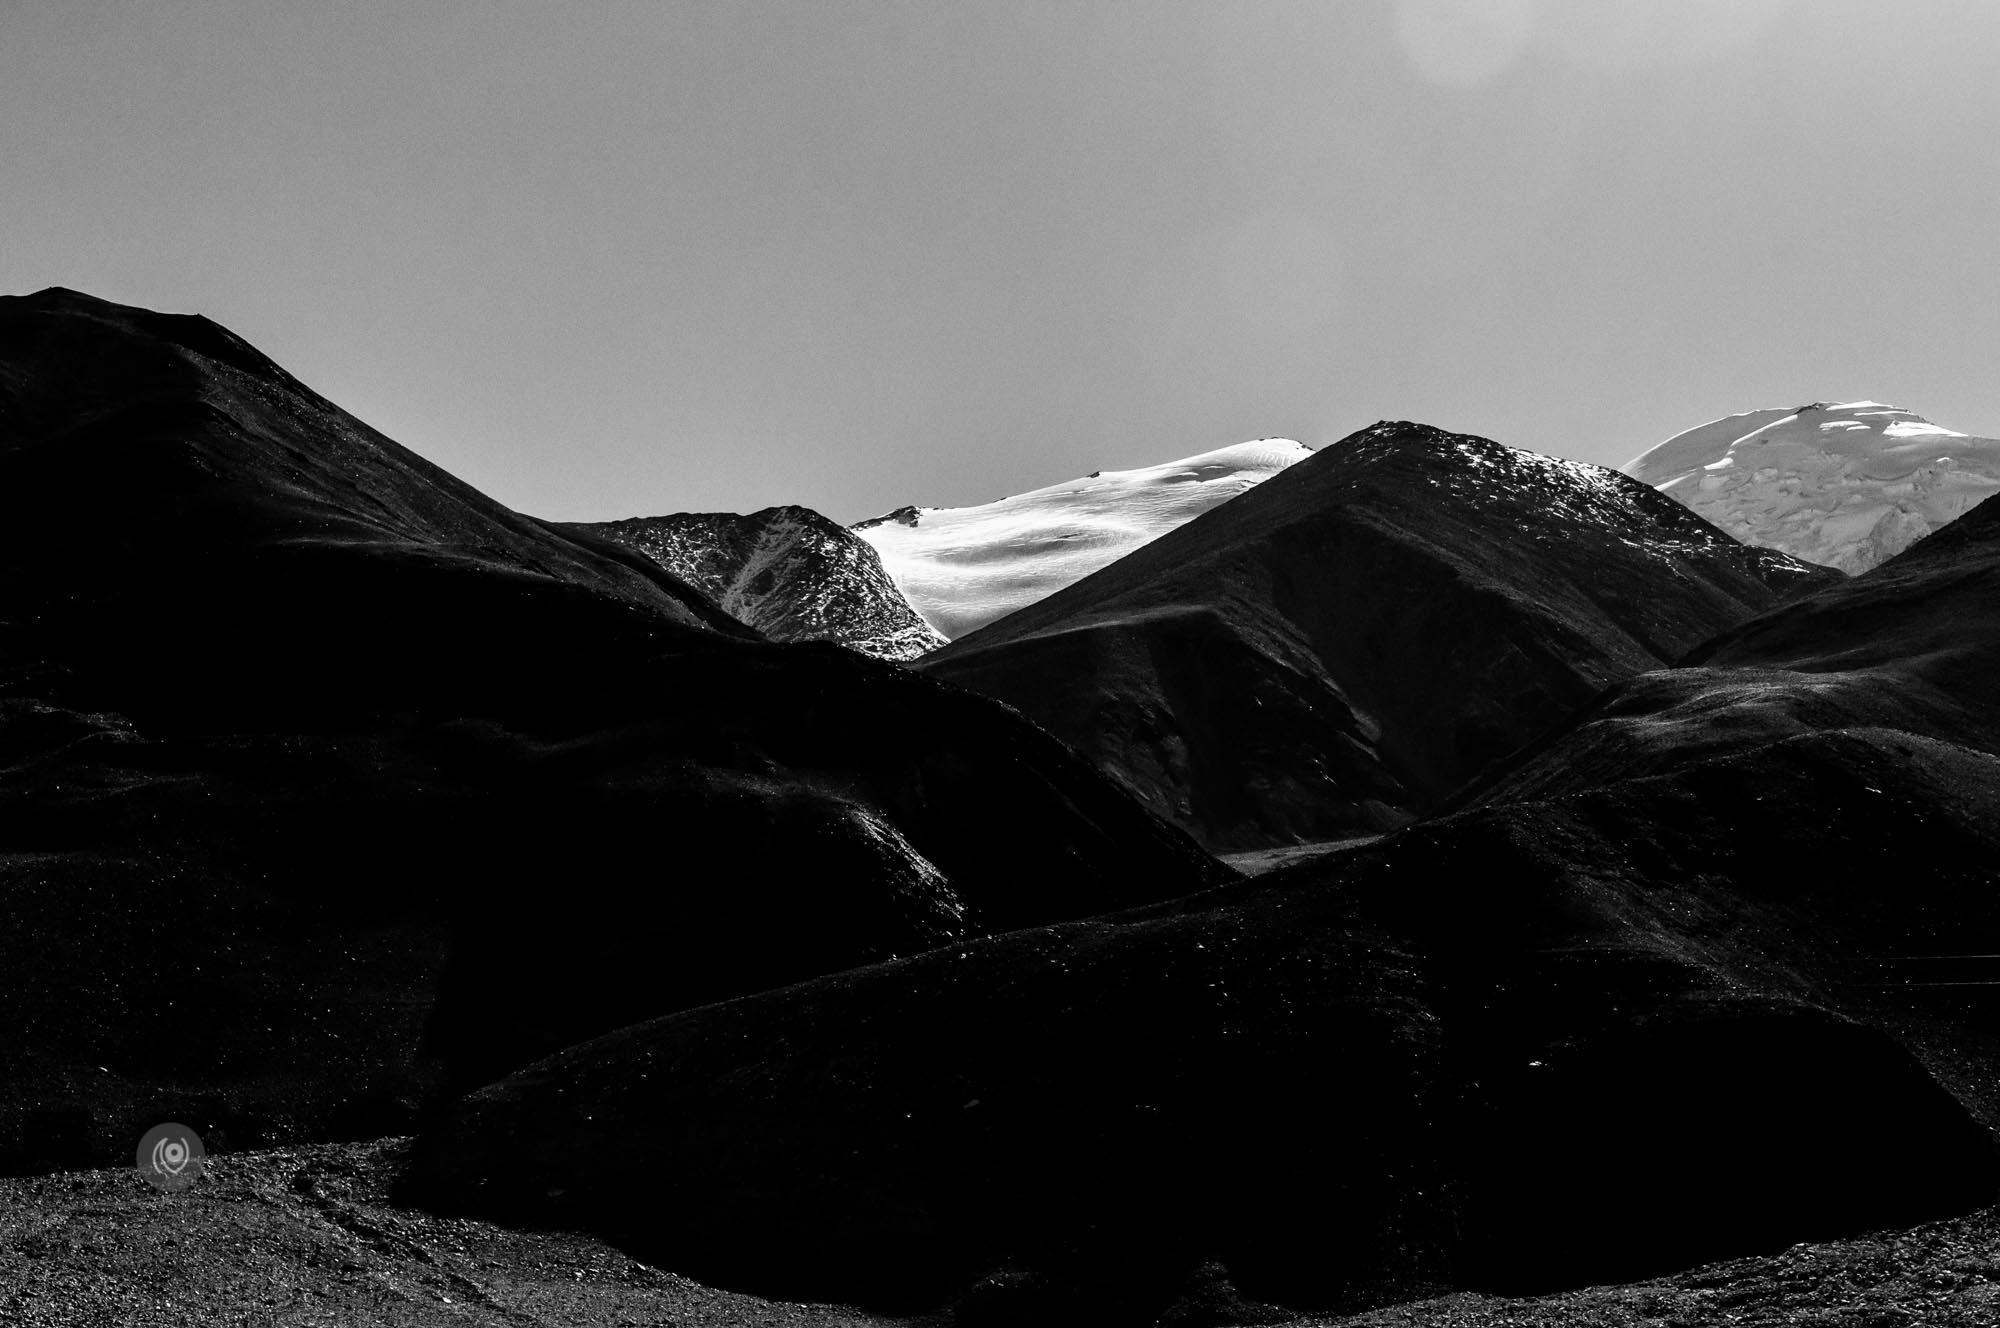 Naina.co, #Landscape, #EyesForDestinations, Ladakh, Leh, India, Travel, Professional Photographer, Photo Prints, #EyesforIndia, Black and White, BW, Mountains, Mountain Ranges, Travel Photographer, Lifestyle Photographer, Luxury Photographer, Travel Blogger, Lifestyle Blogger, Luxury Blogger, Blogger